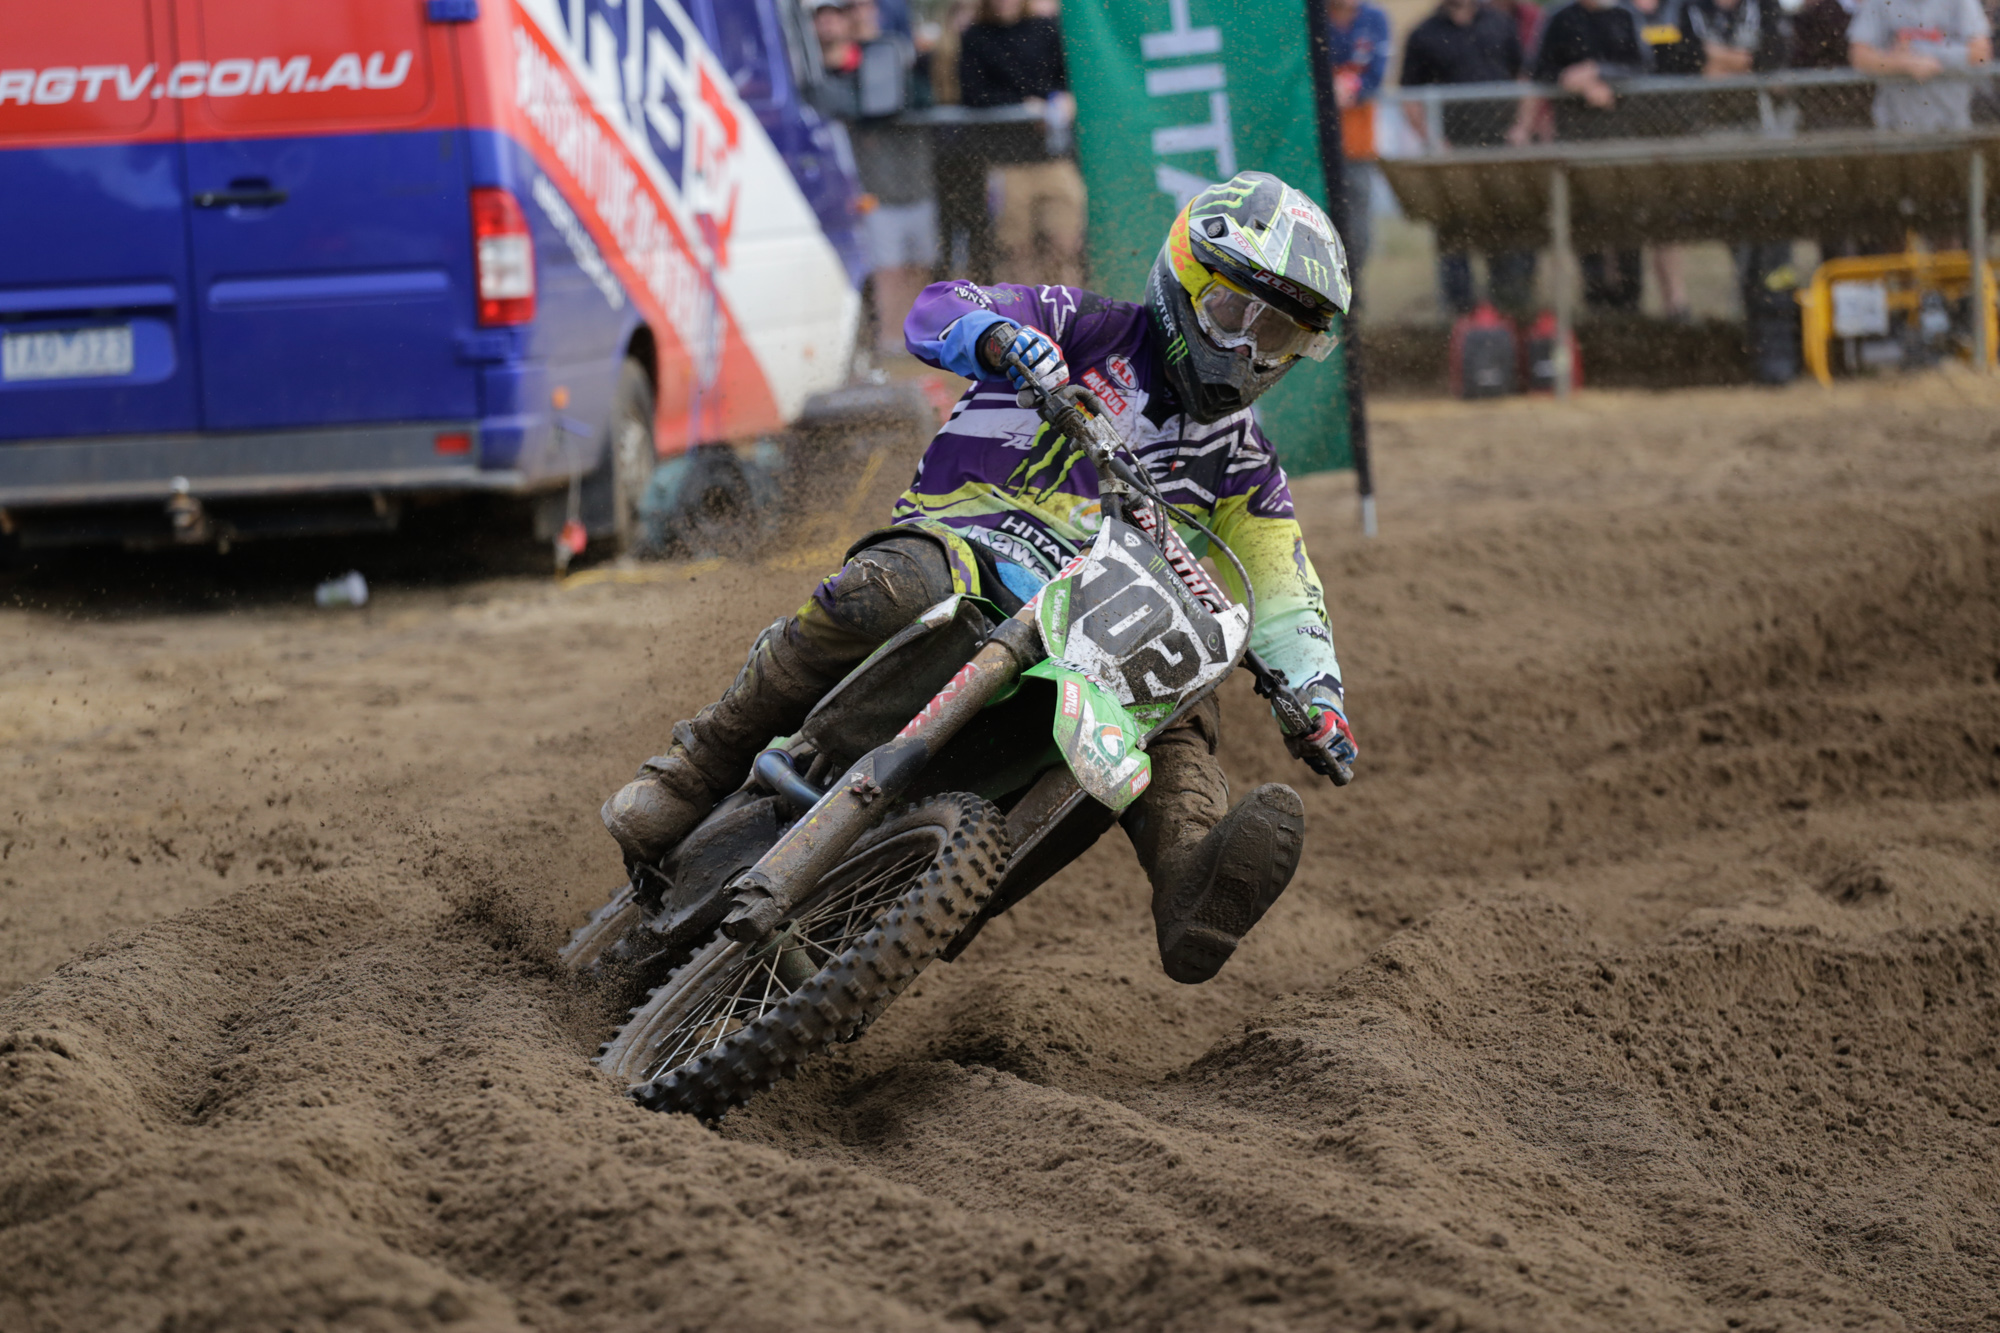 MX1-102-Matt_Moss-perth-R5-2-2